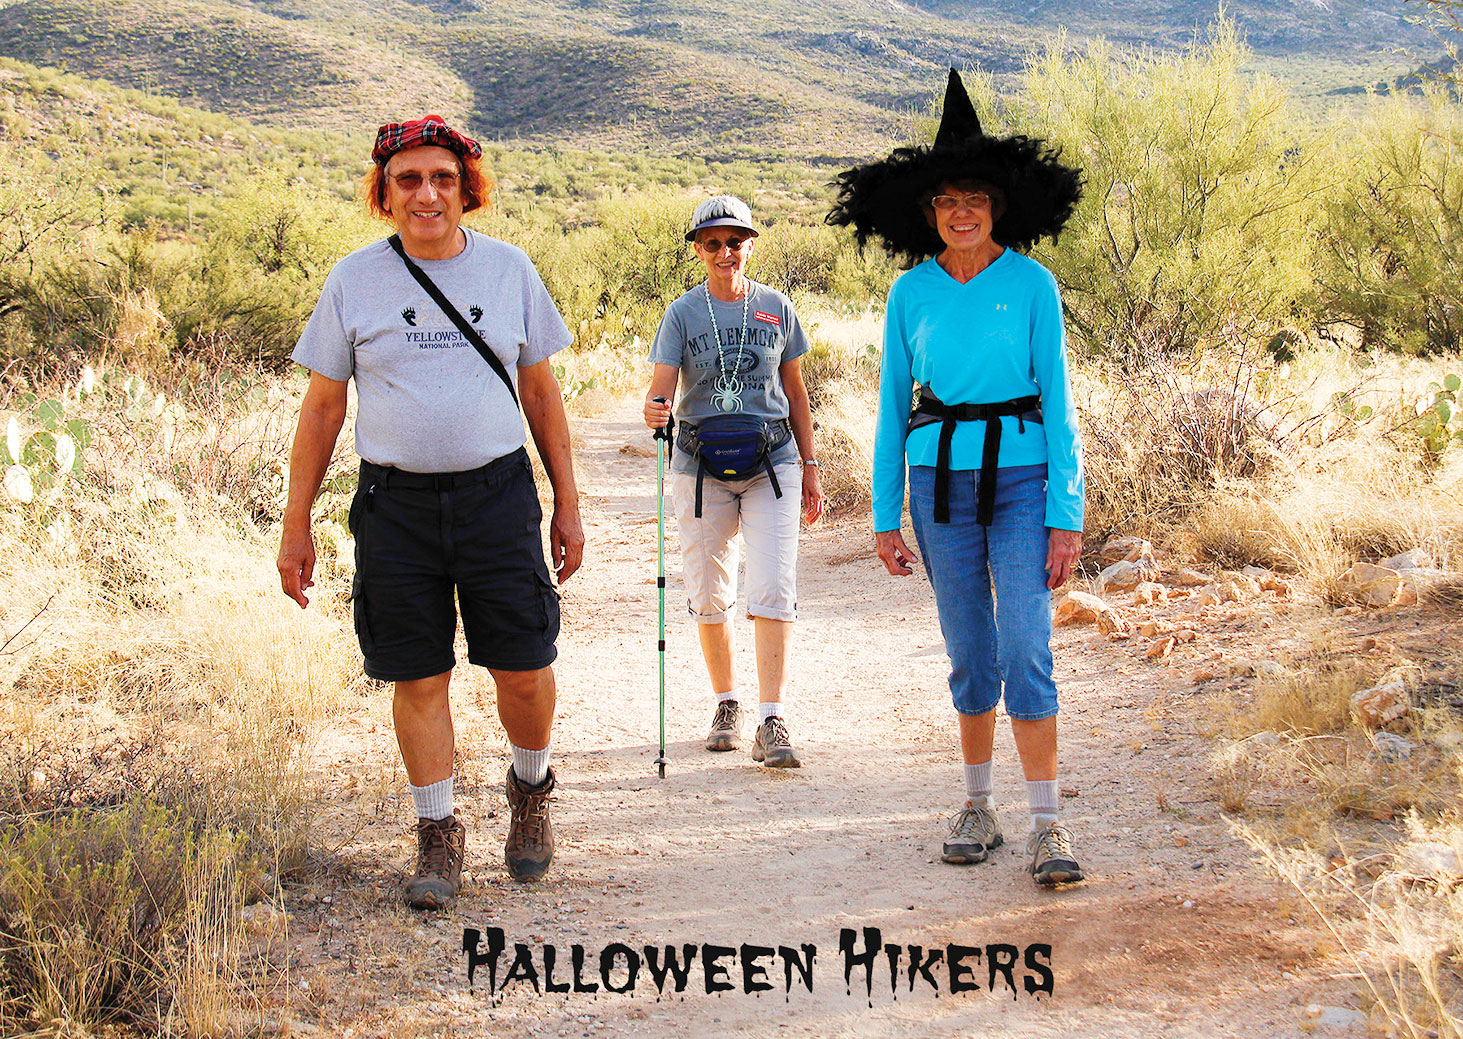 Halloween hikers are Michael Reale, Rainie Warner and Jan Springer; photo by Barbara Wilder